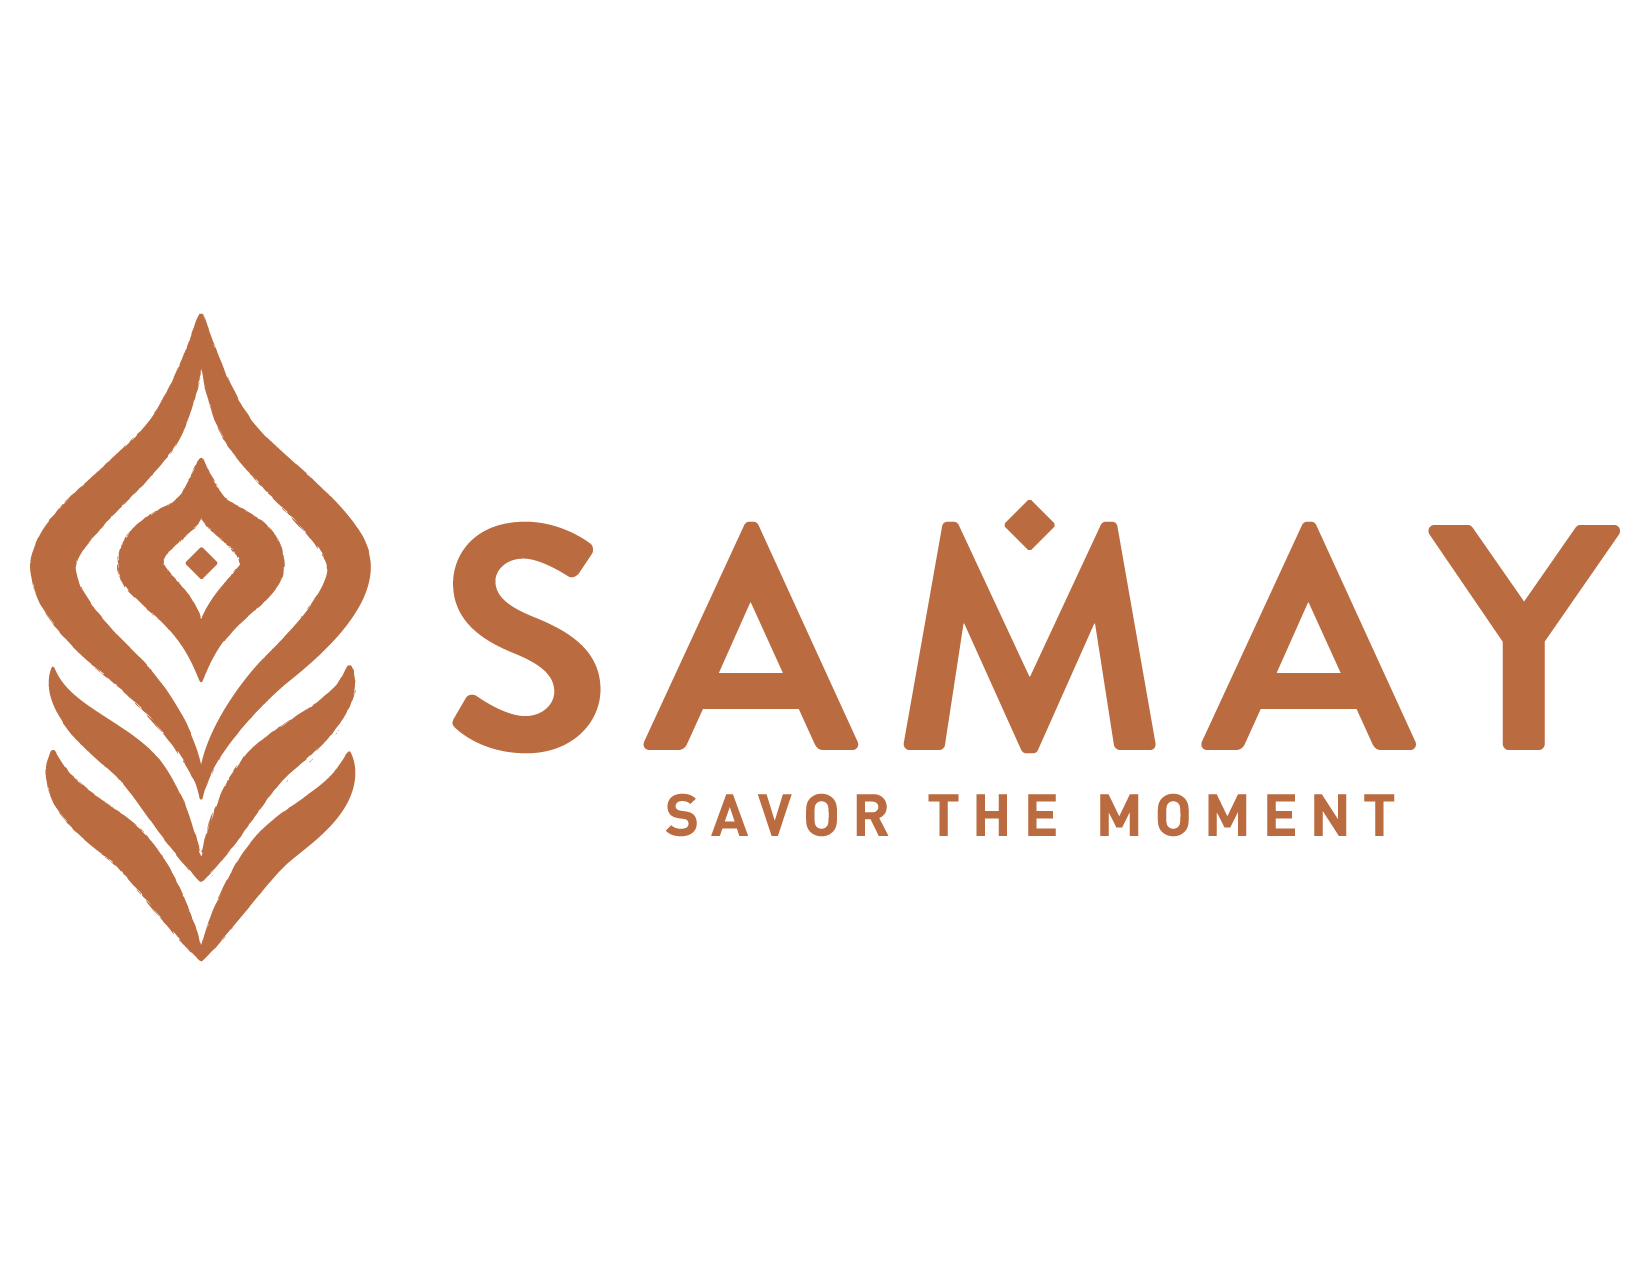 SAMAY_Horizontal_Color.png